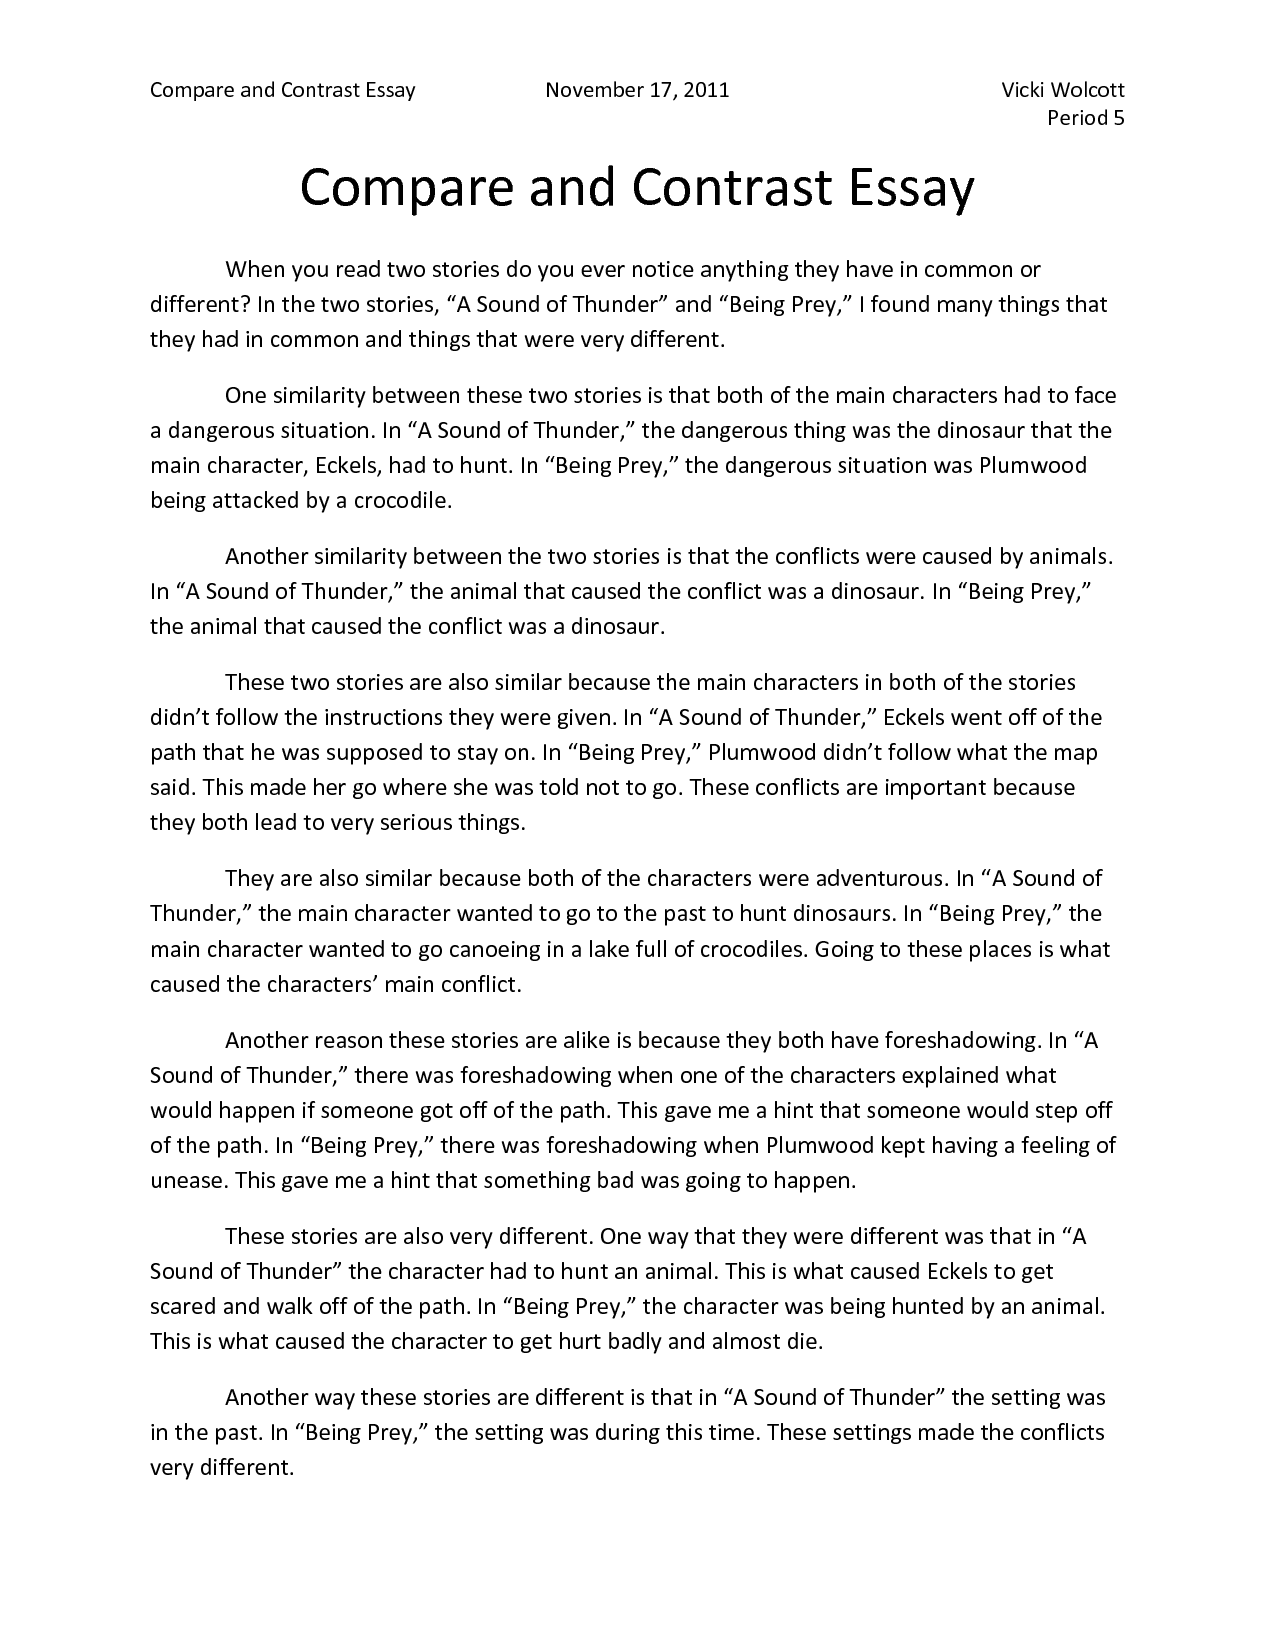 compare and contrast essay over the outsiders - compare and contrast the 1960s and - compare and contrast the movie version of the outsiders with the has made over the course of the unit by demonstrating.